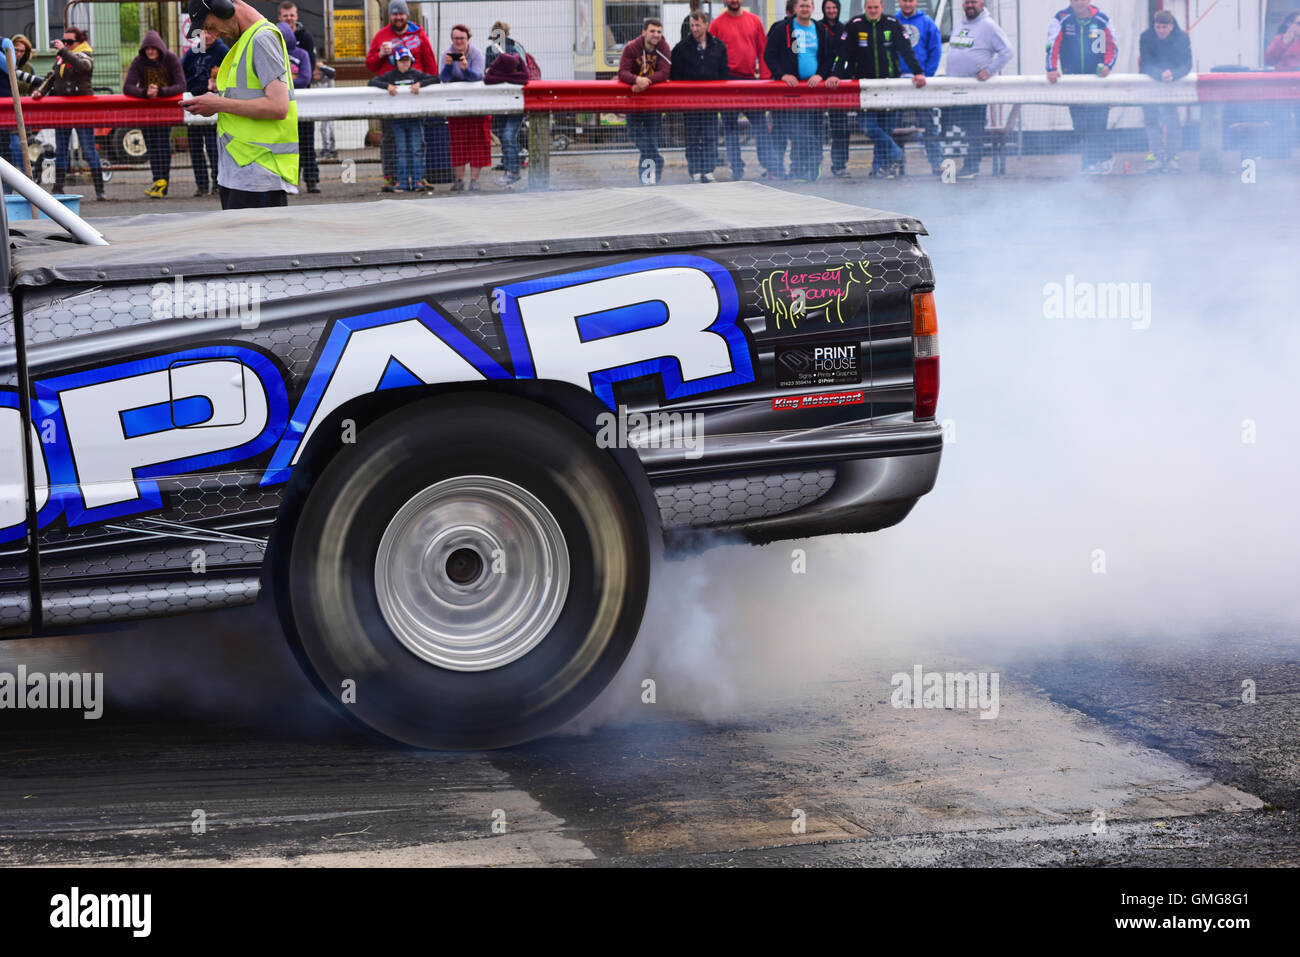 drag racing car wheel spinning to generate heat in tyres to increase grip, york drag raceway track yorkshire united Stock Photo